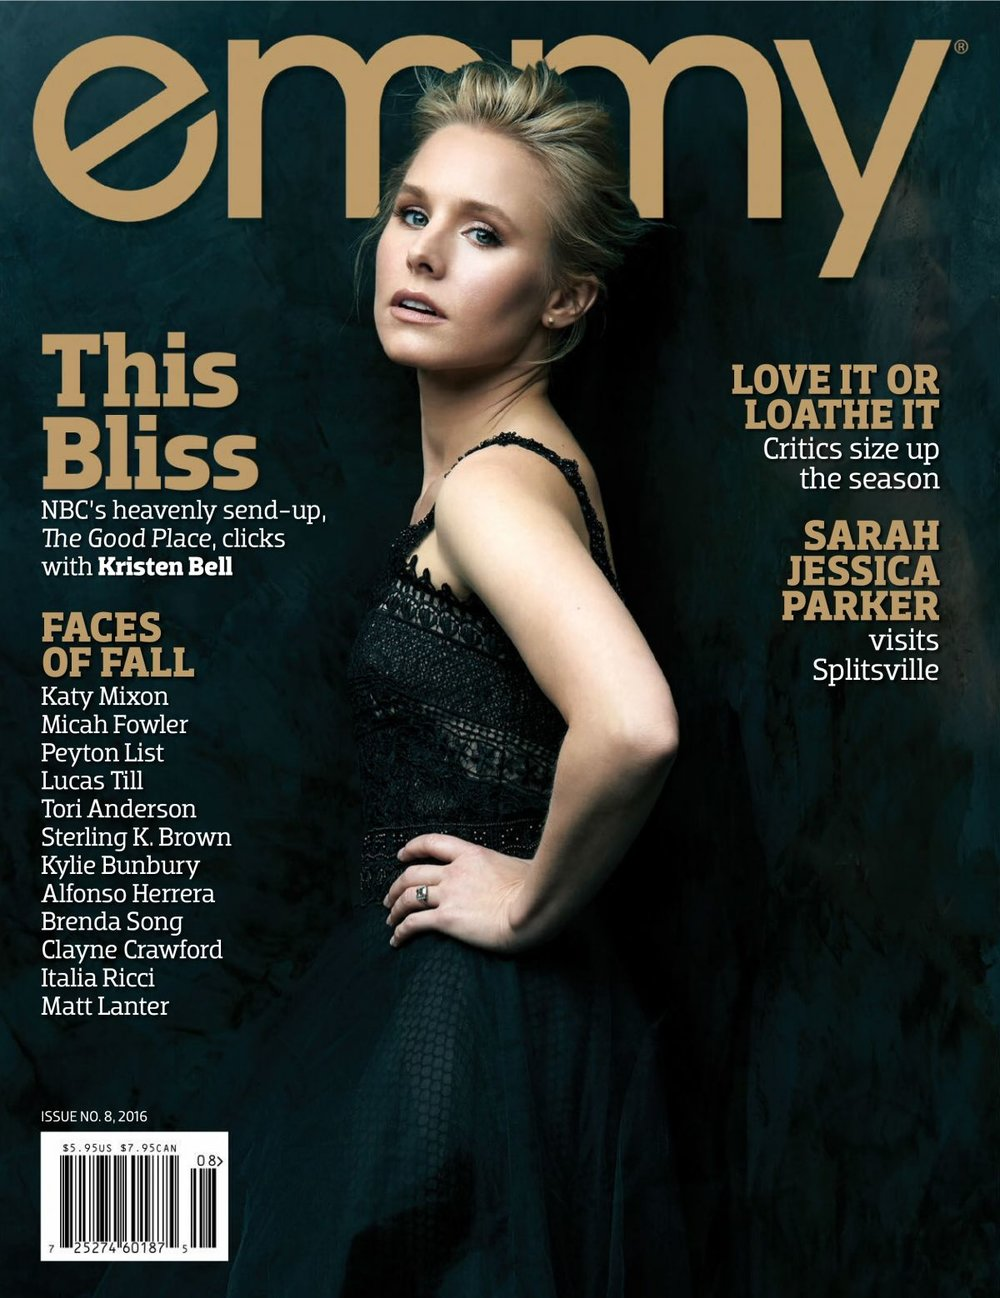 kristen-bell-in-emmy-magazine-issue-no.8-2016_1.jpg